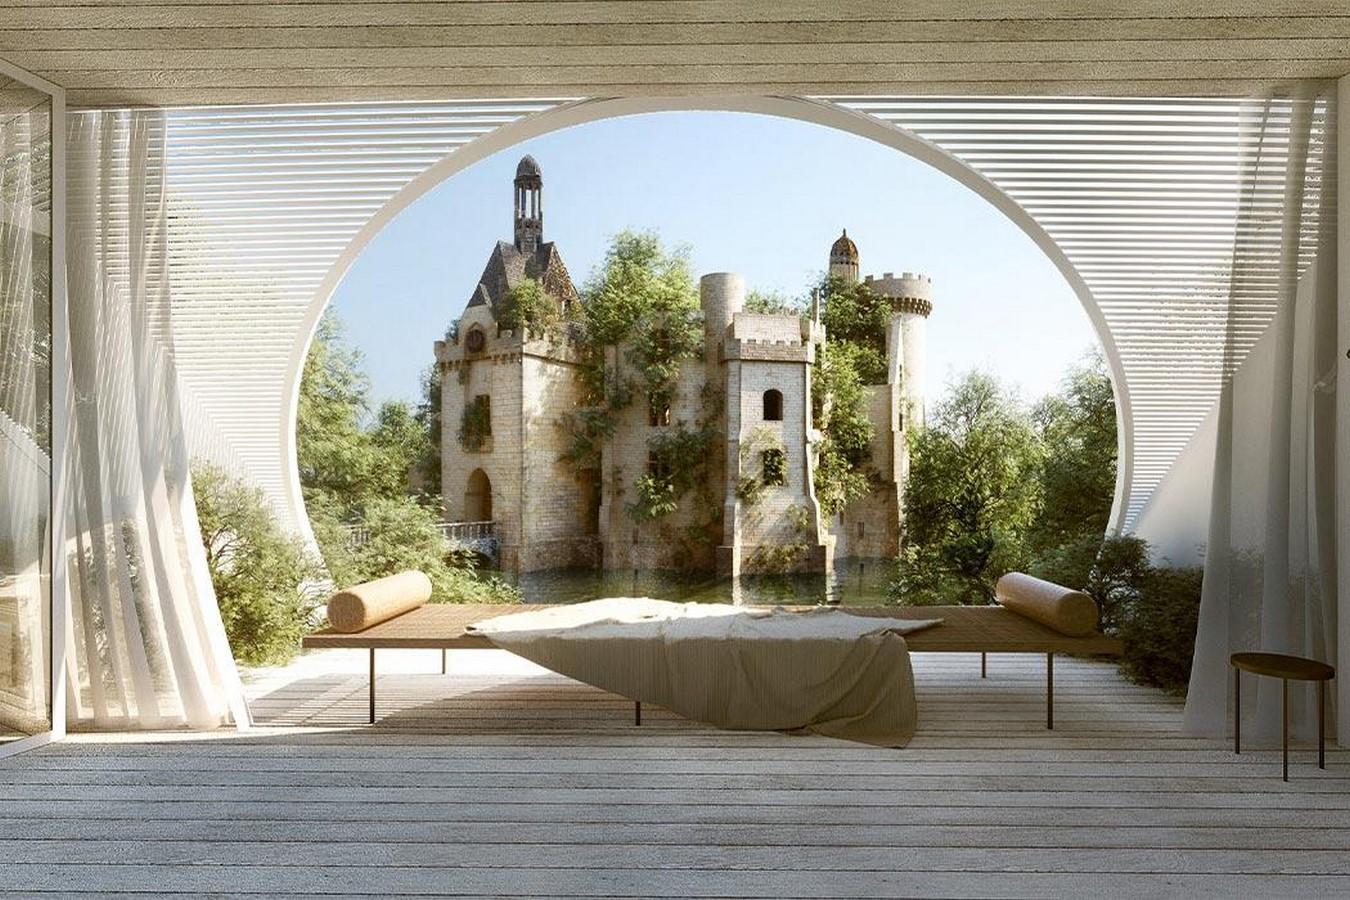 'château-scope' treehouse to frame views of a french castle proposed by LMTLS - Sheet4